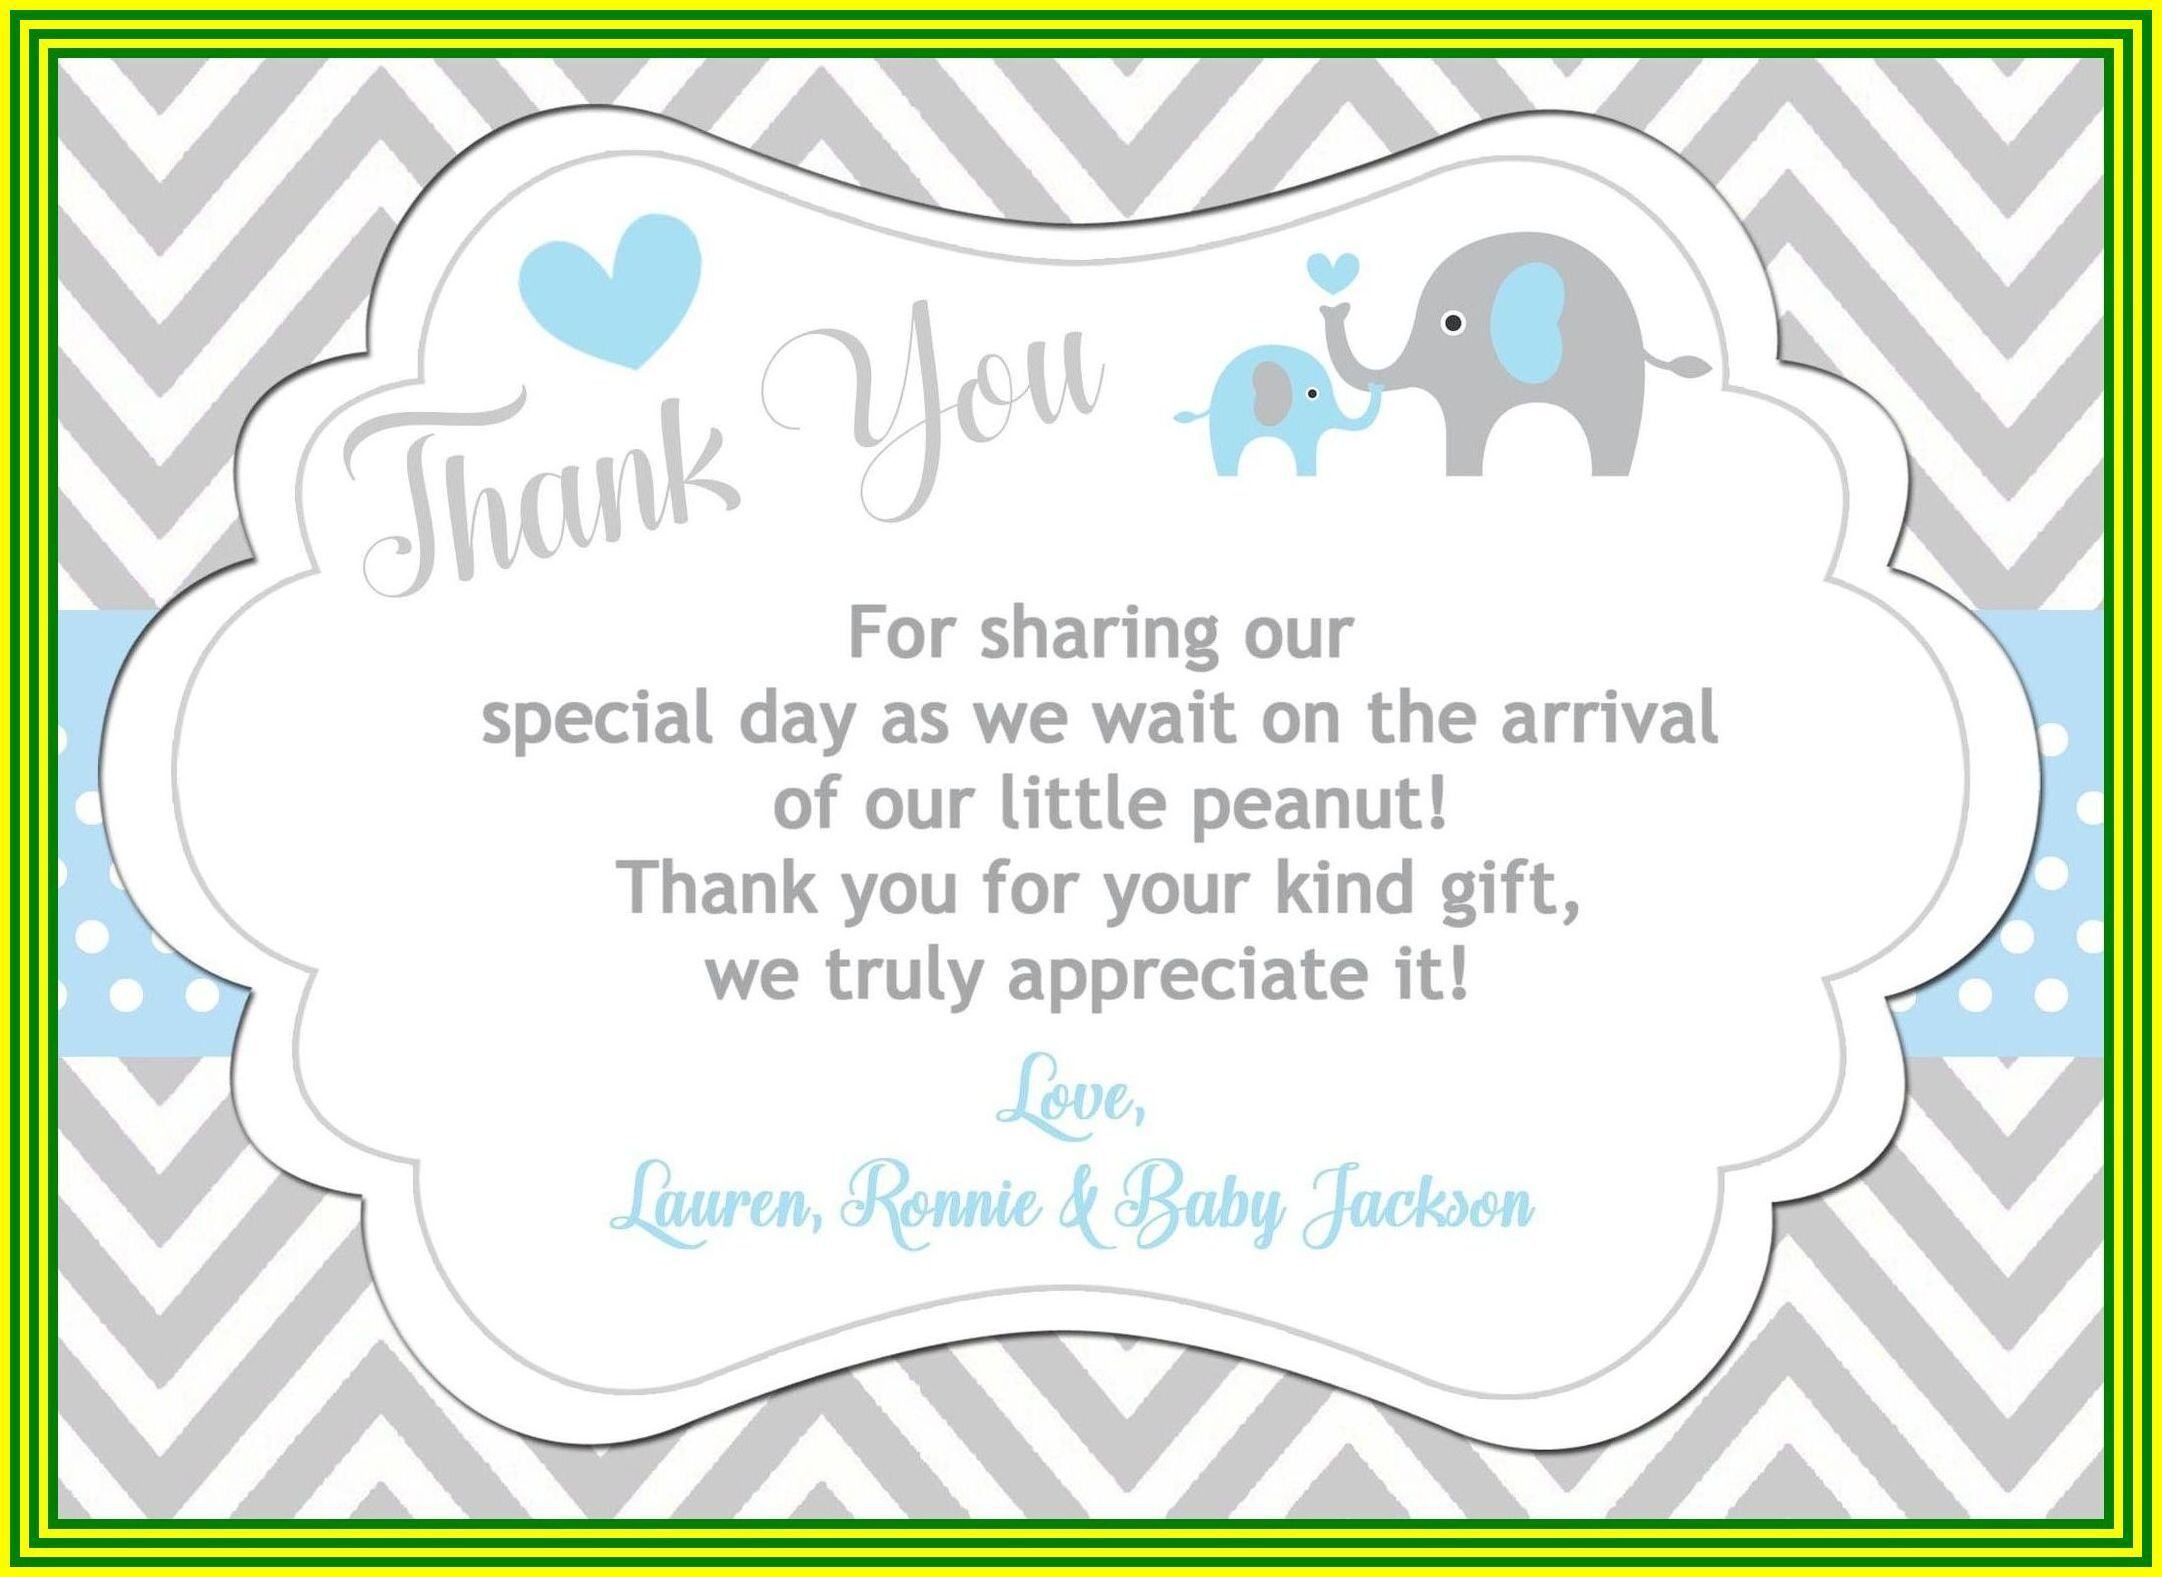 000 Archaicawful Thank You Note Template For Baby Shower Gift High Definition  Card Letter SampleFull